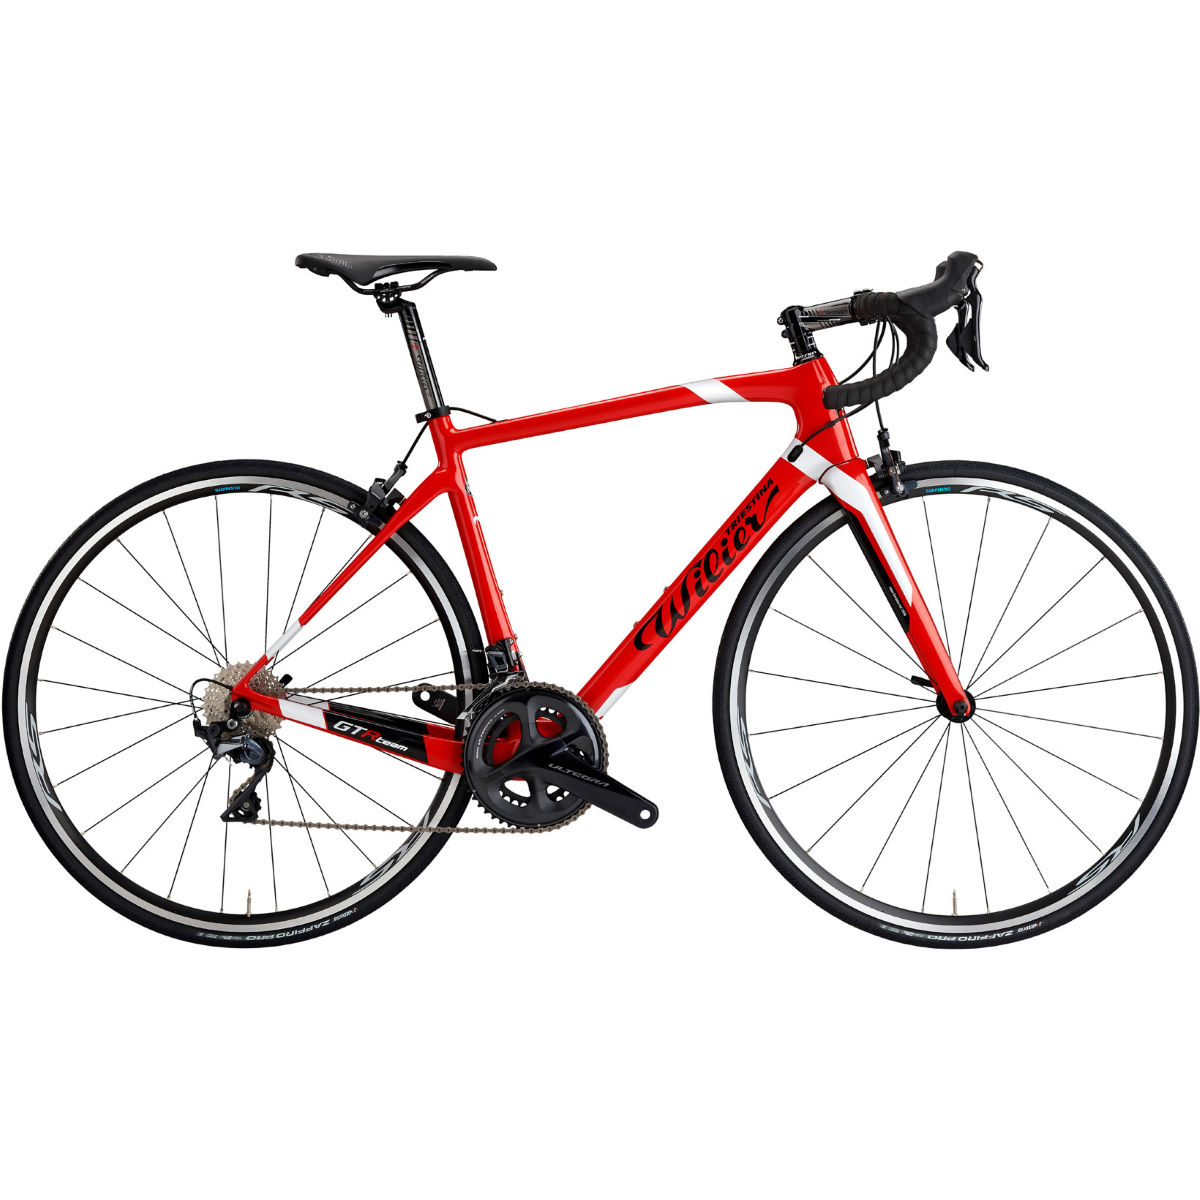 8adb2169d73 Compare the best prices for the Wilier GTR here